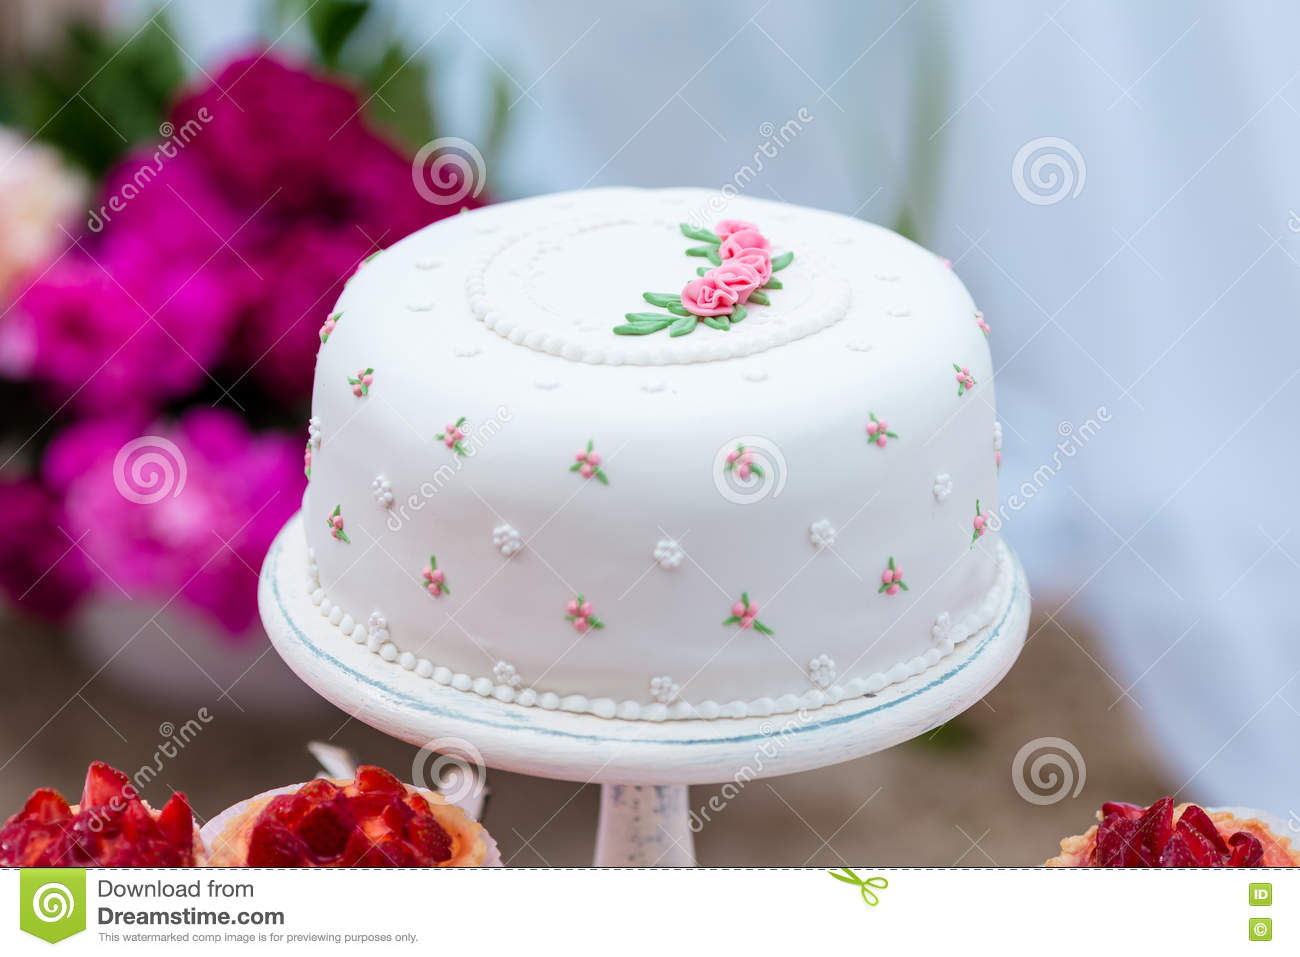 Beautiful White Wedding Cake With Flowers Outdoor Shabby Chic Style